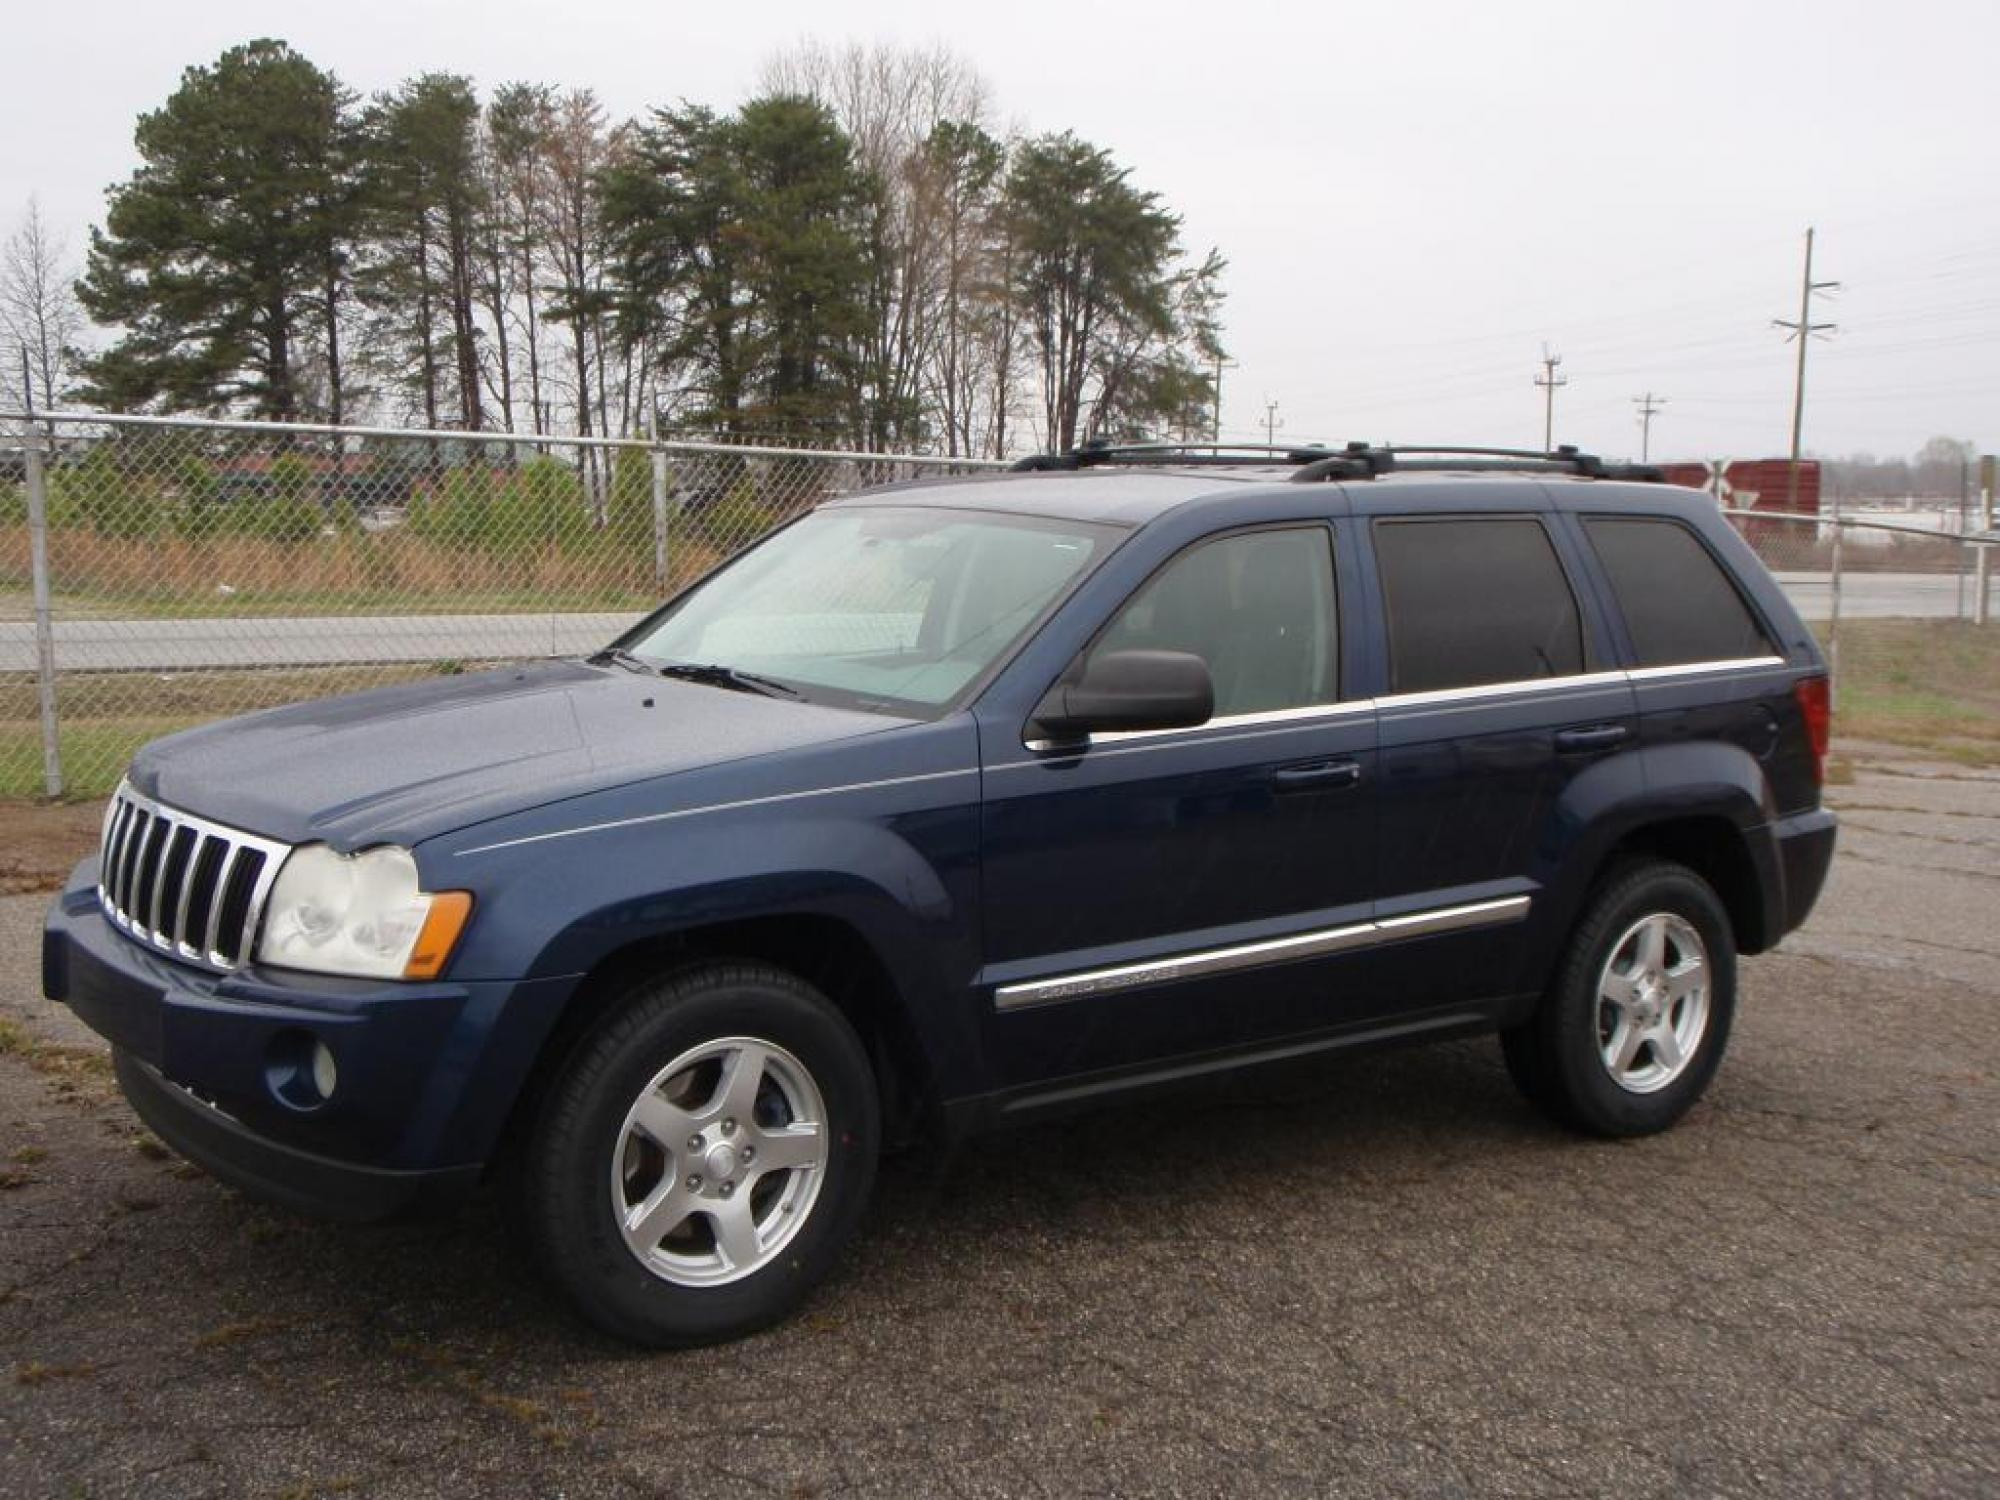 2005 Jeep GRAND CHEROKEE LIMITED 4 Door SUV BLUE GRAY LEATHER 4-WHEEL ANTI-LOCK DISC BRAKESAir